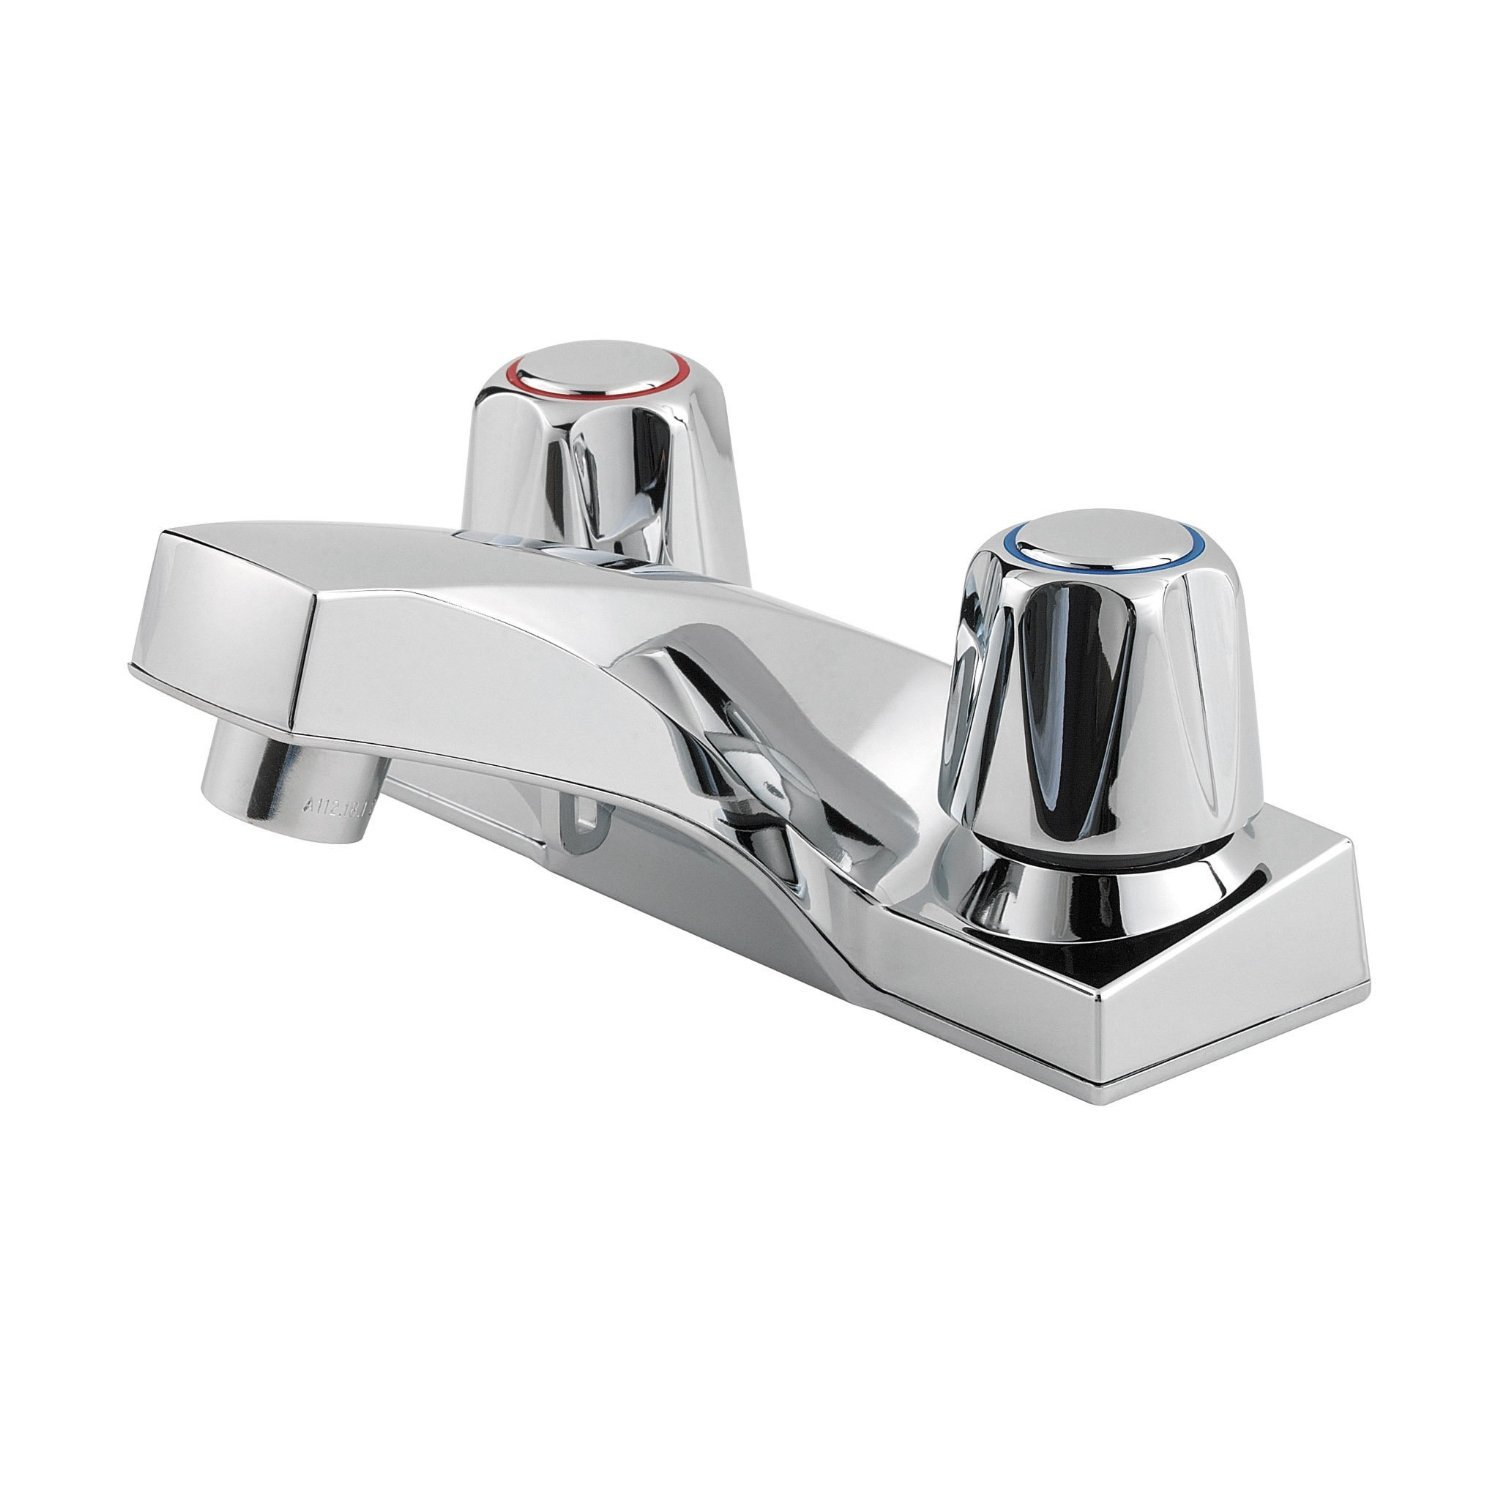 Price Pfister Lg143 6000 Bathroom Faucet 2 Handle Lead Free Chrome